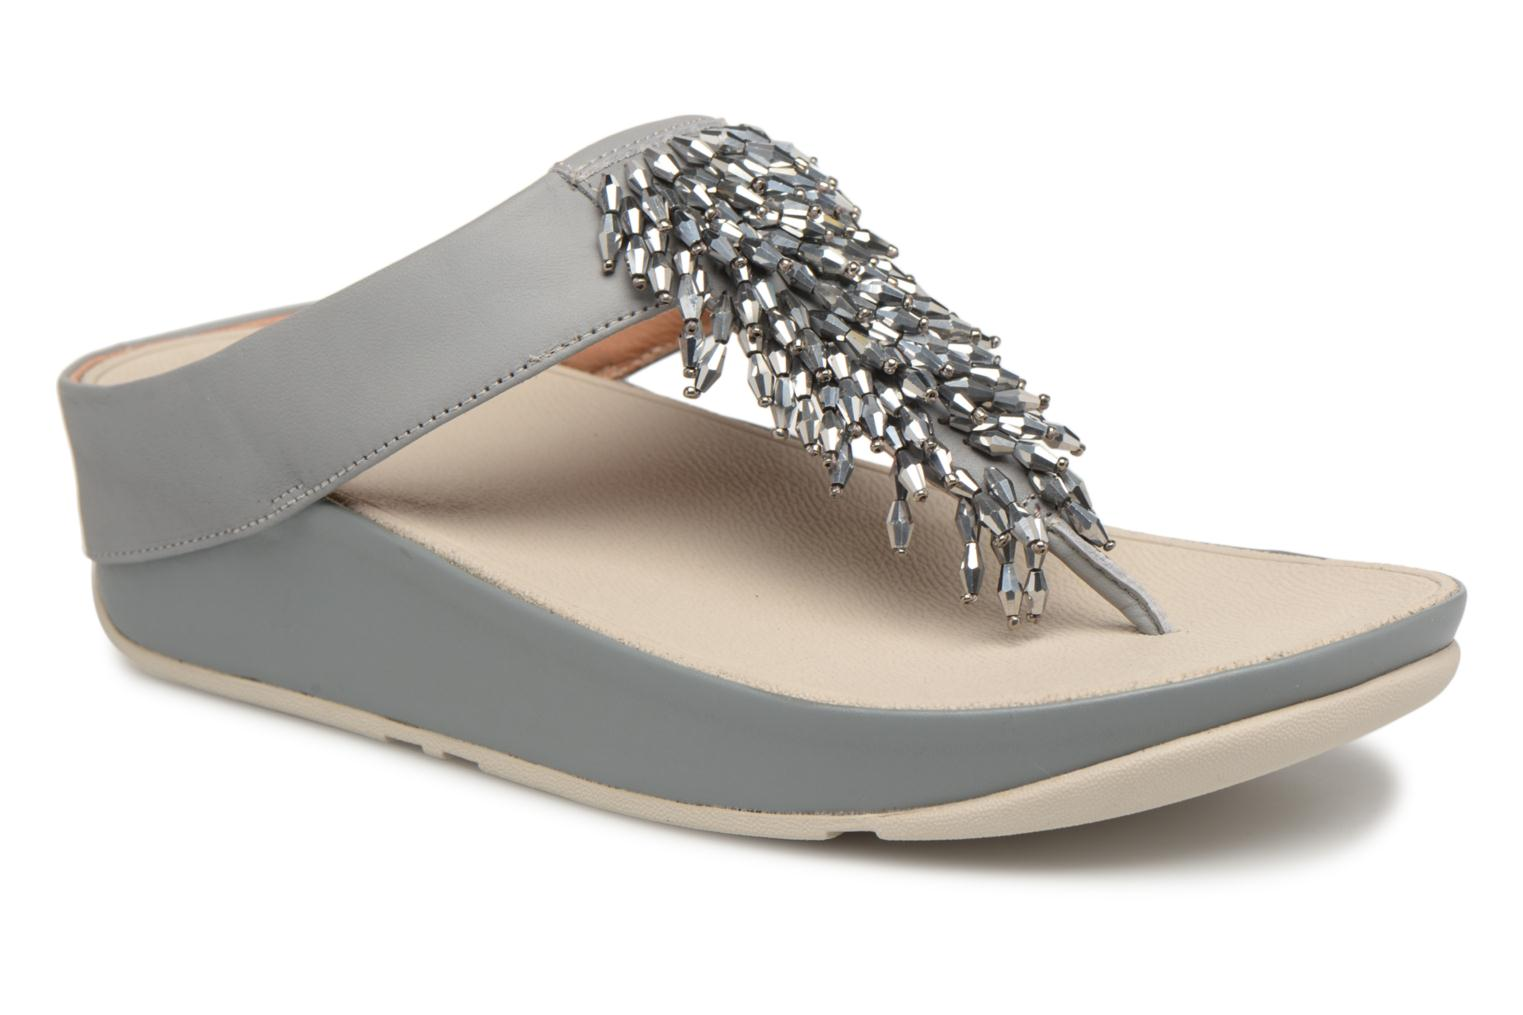 FitFlop Cha Cha Crystal Argent j2oME3370